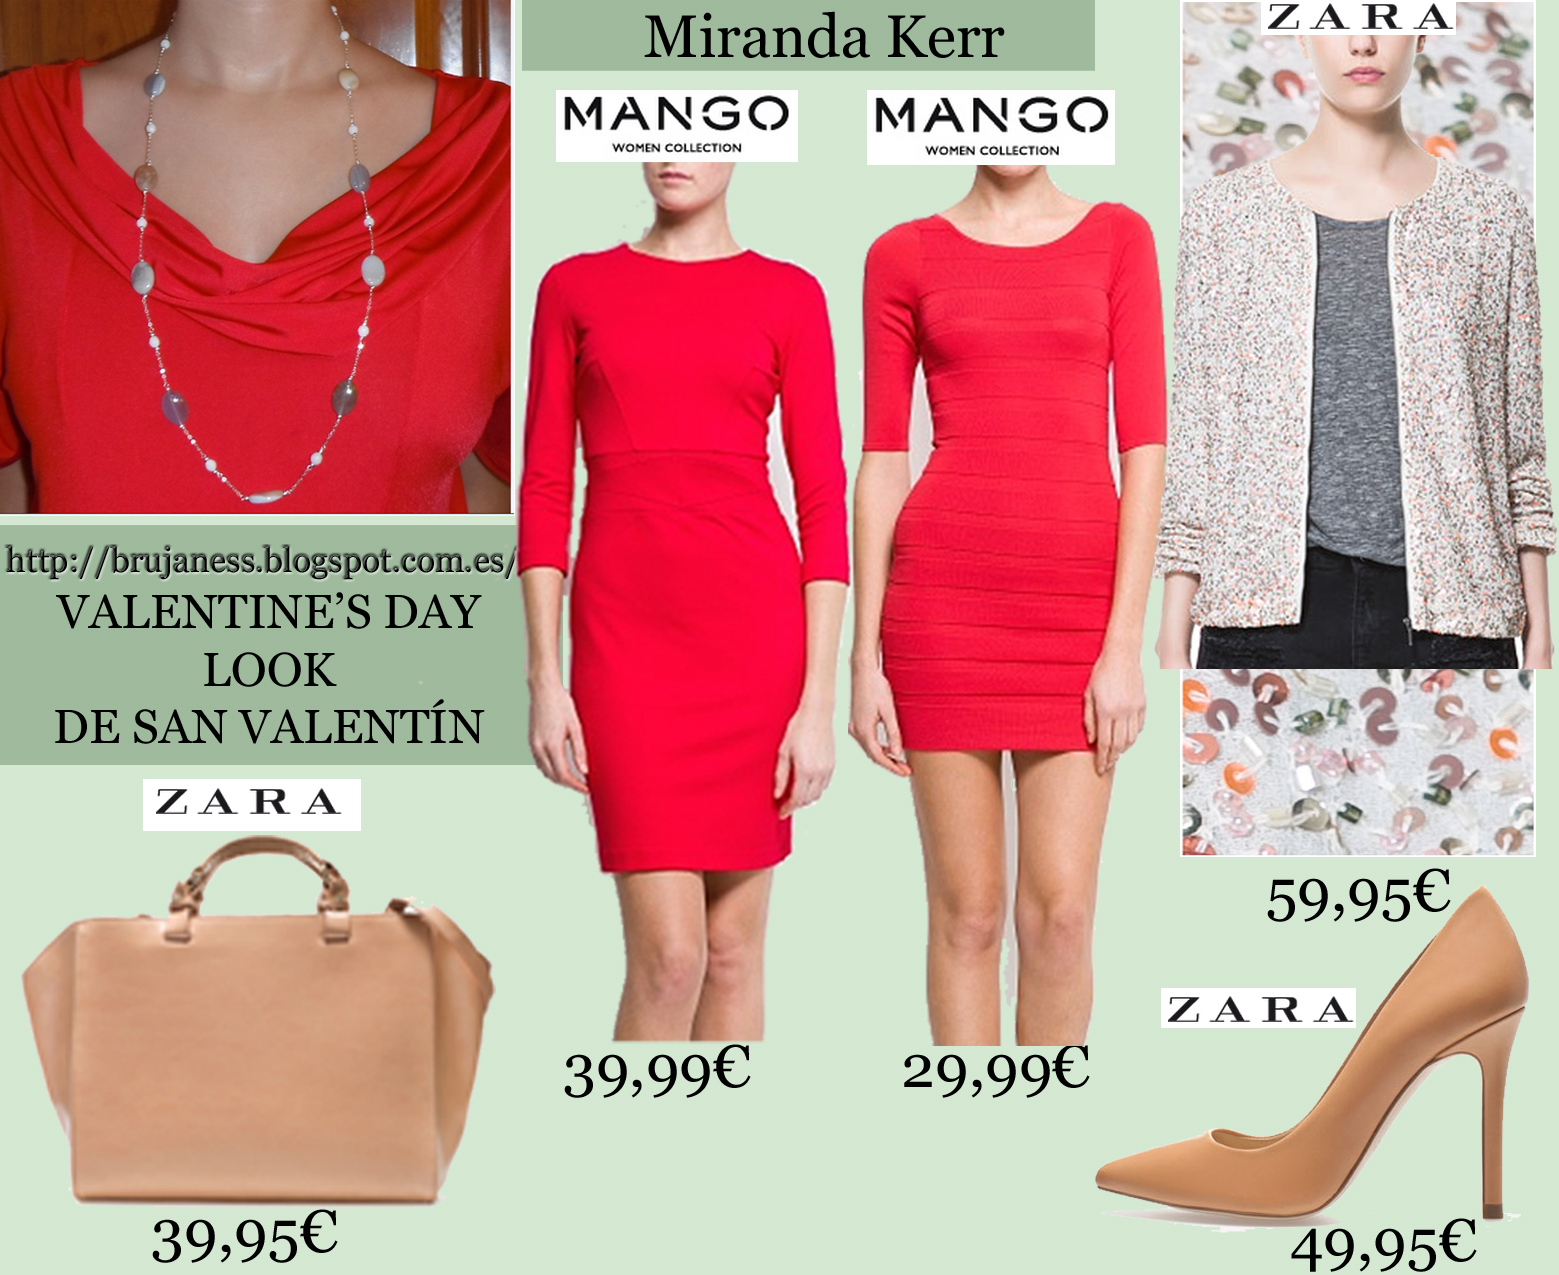 Miranda Kerr bodycon dress, vestido ajustado rojo, san valentín what to wear, as seen on, visto en, nude pumps, zapatos salón maquillaje, ponytail, mango dress, zara bag, shopper, zara, necklace, cardigan sequined, pink, chaqueta lentejuelas, look, combine, combinar, trenzado, handbag